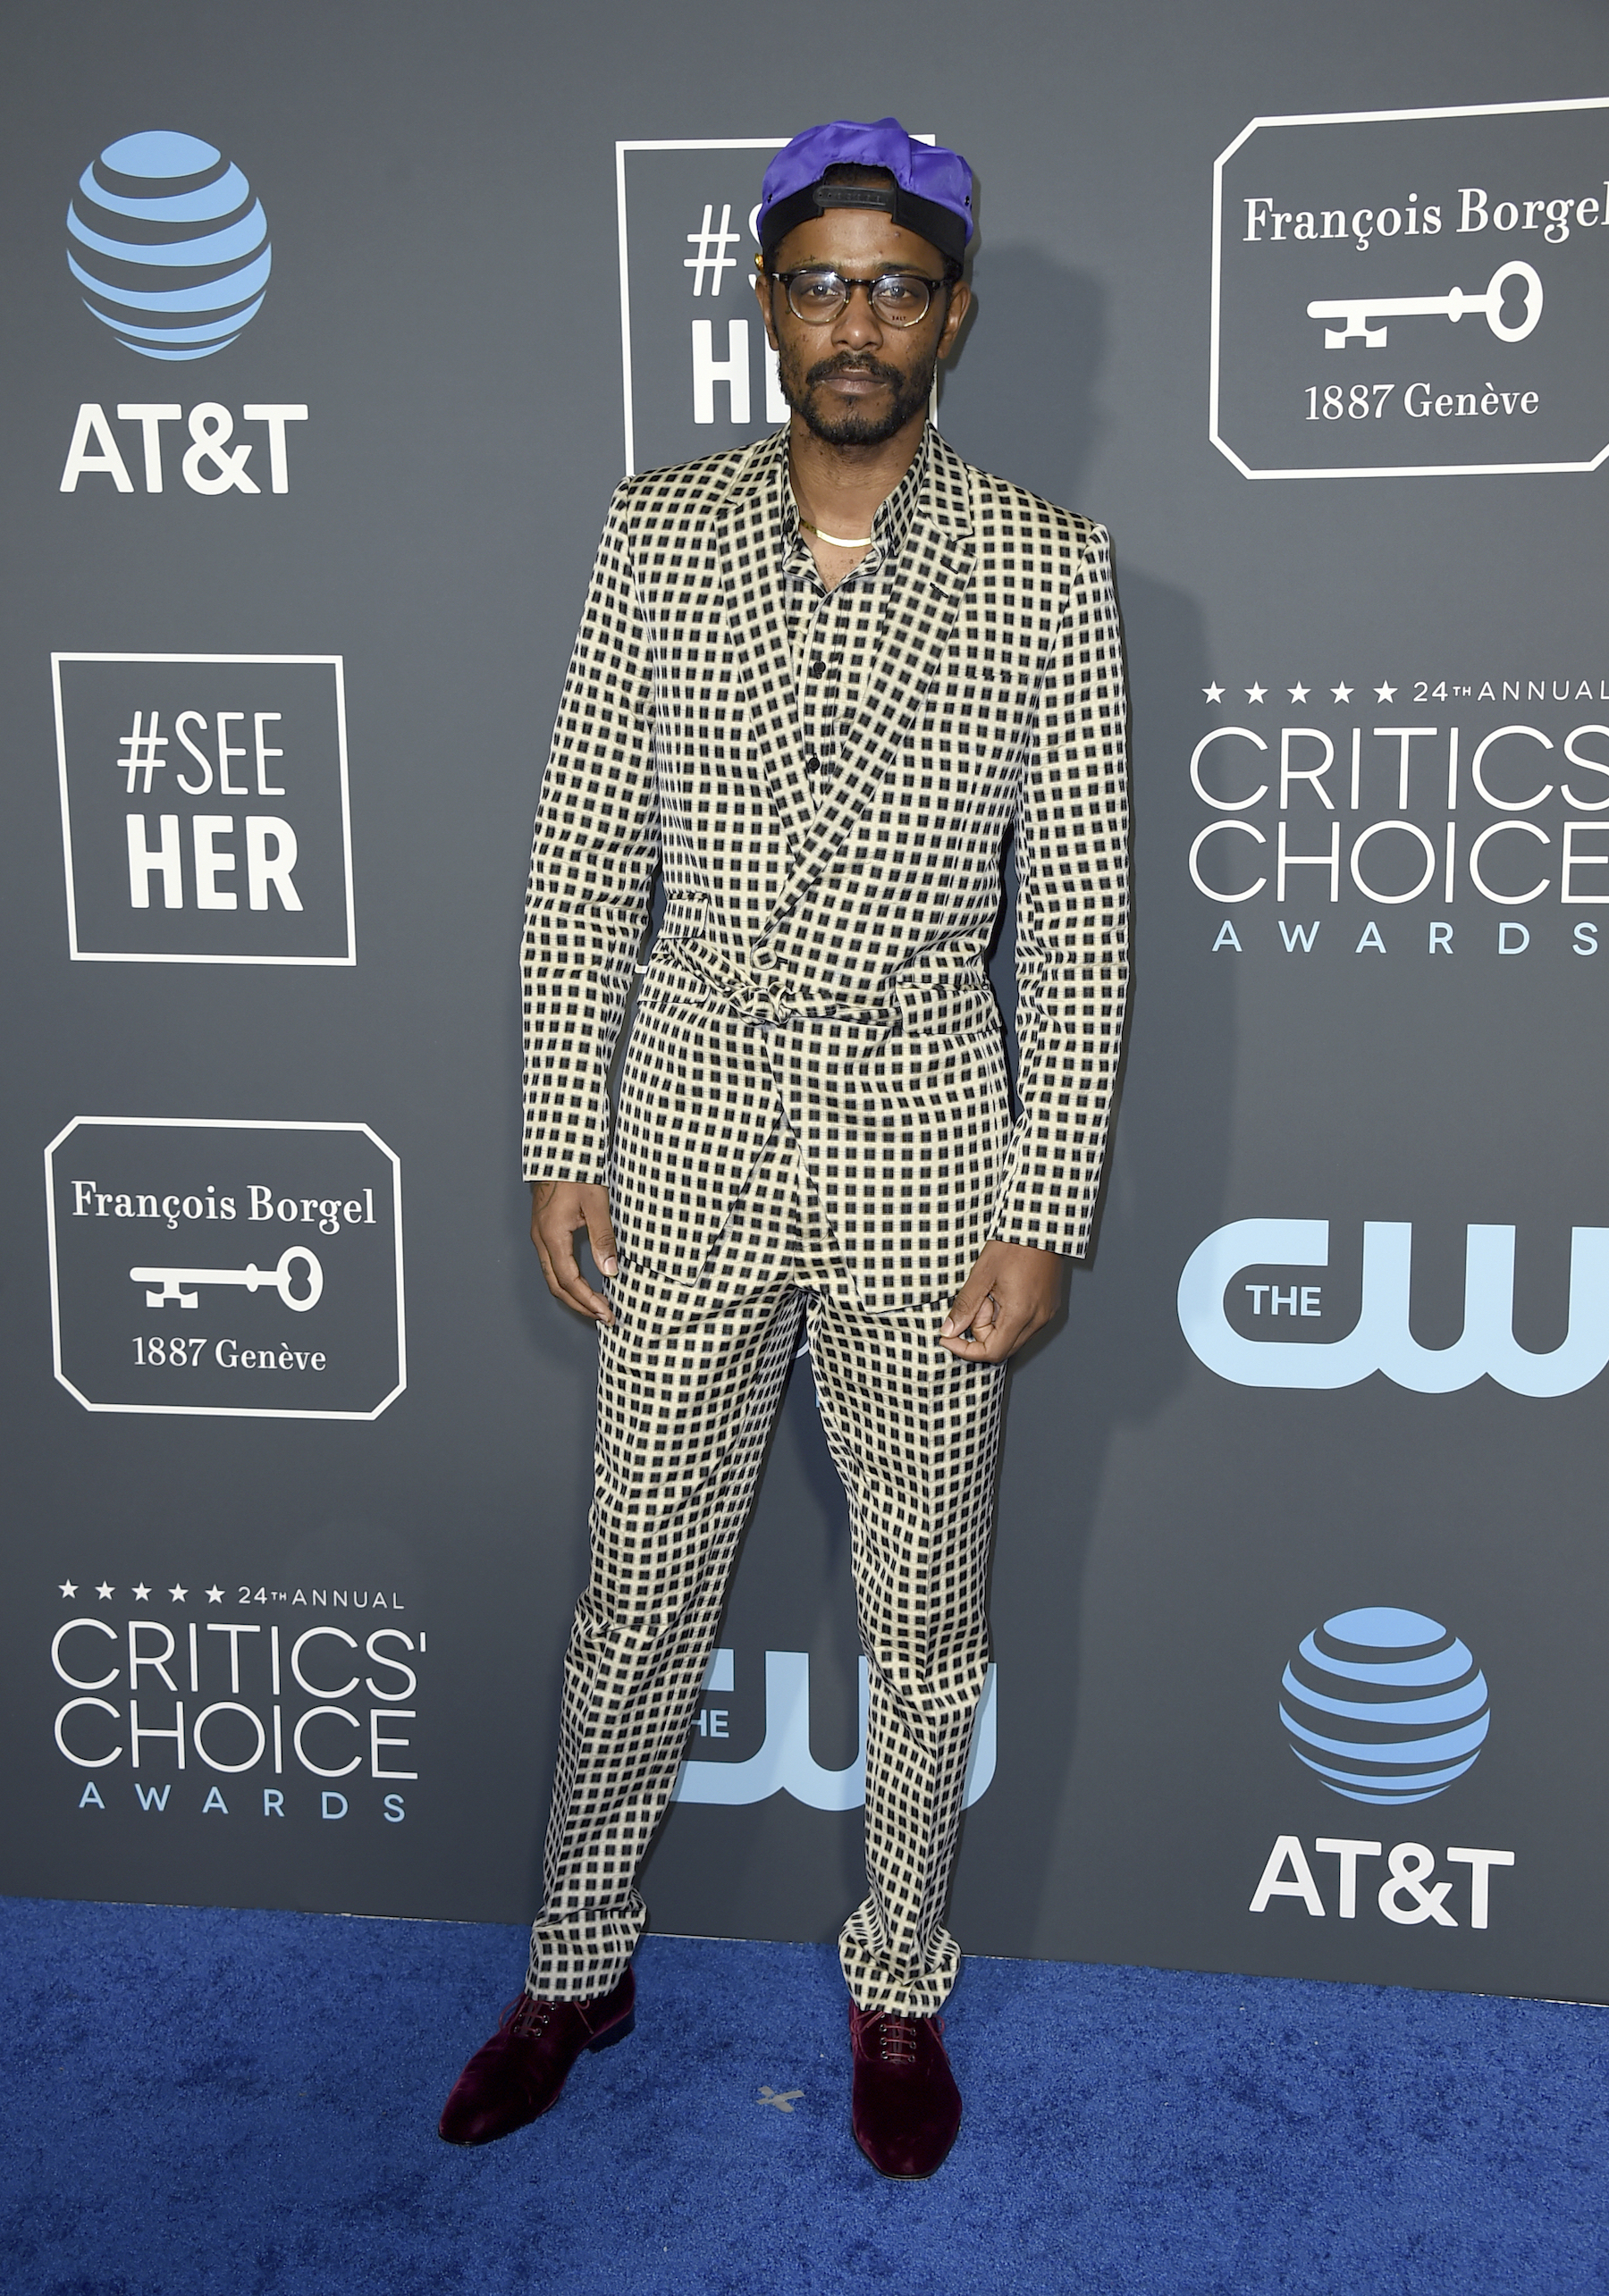 "<div class=""meta image-caption""><div class=""origin-logo origin-image ap""><span>AP</span></div><span class=""caption-text"">Lakeith Stanfield arrives at the 24th annual Critics' Choice Awards on Sunday, Jan. 13, 2019, at the Barker Hangar in Santa Monica, Calif. (Jordan Strauss/Invision/AP)</span></div>"